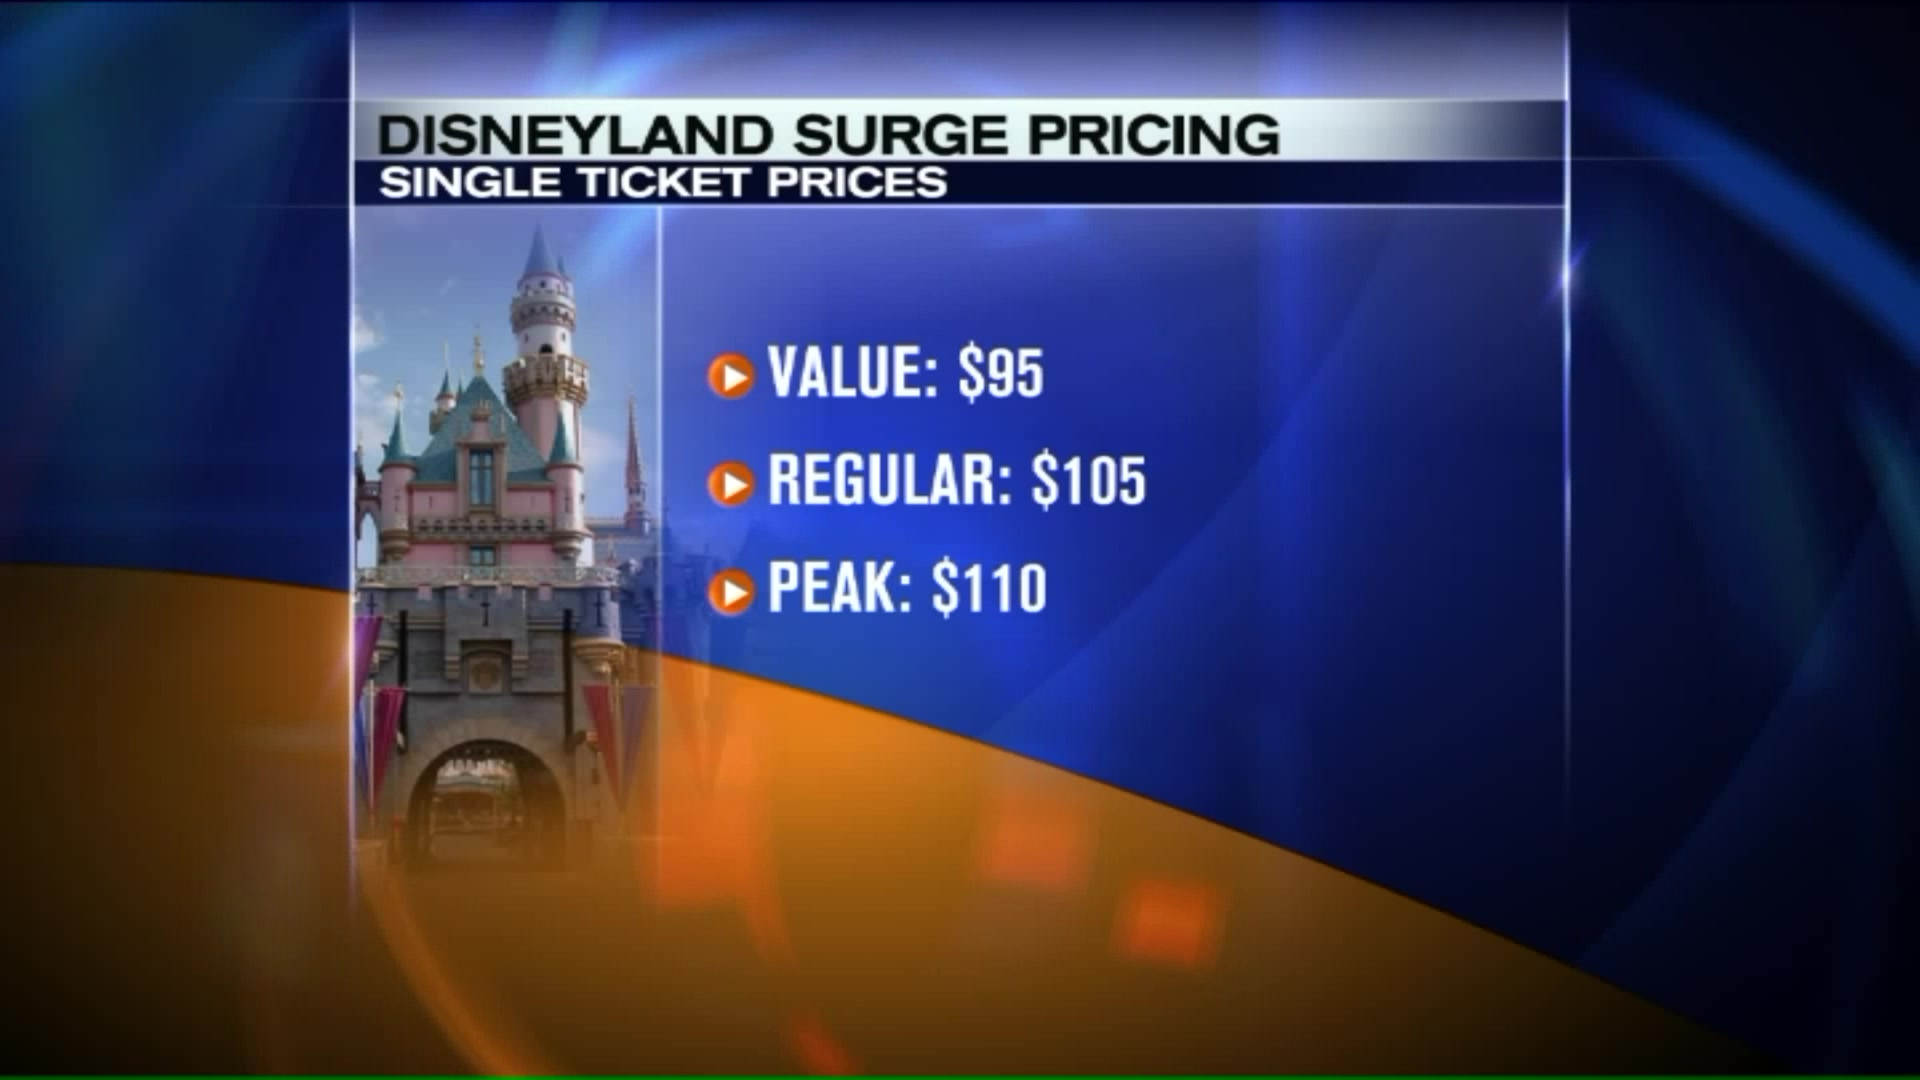 Disney Introduces Surge Pricing at Theme Parks